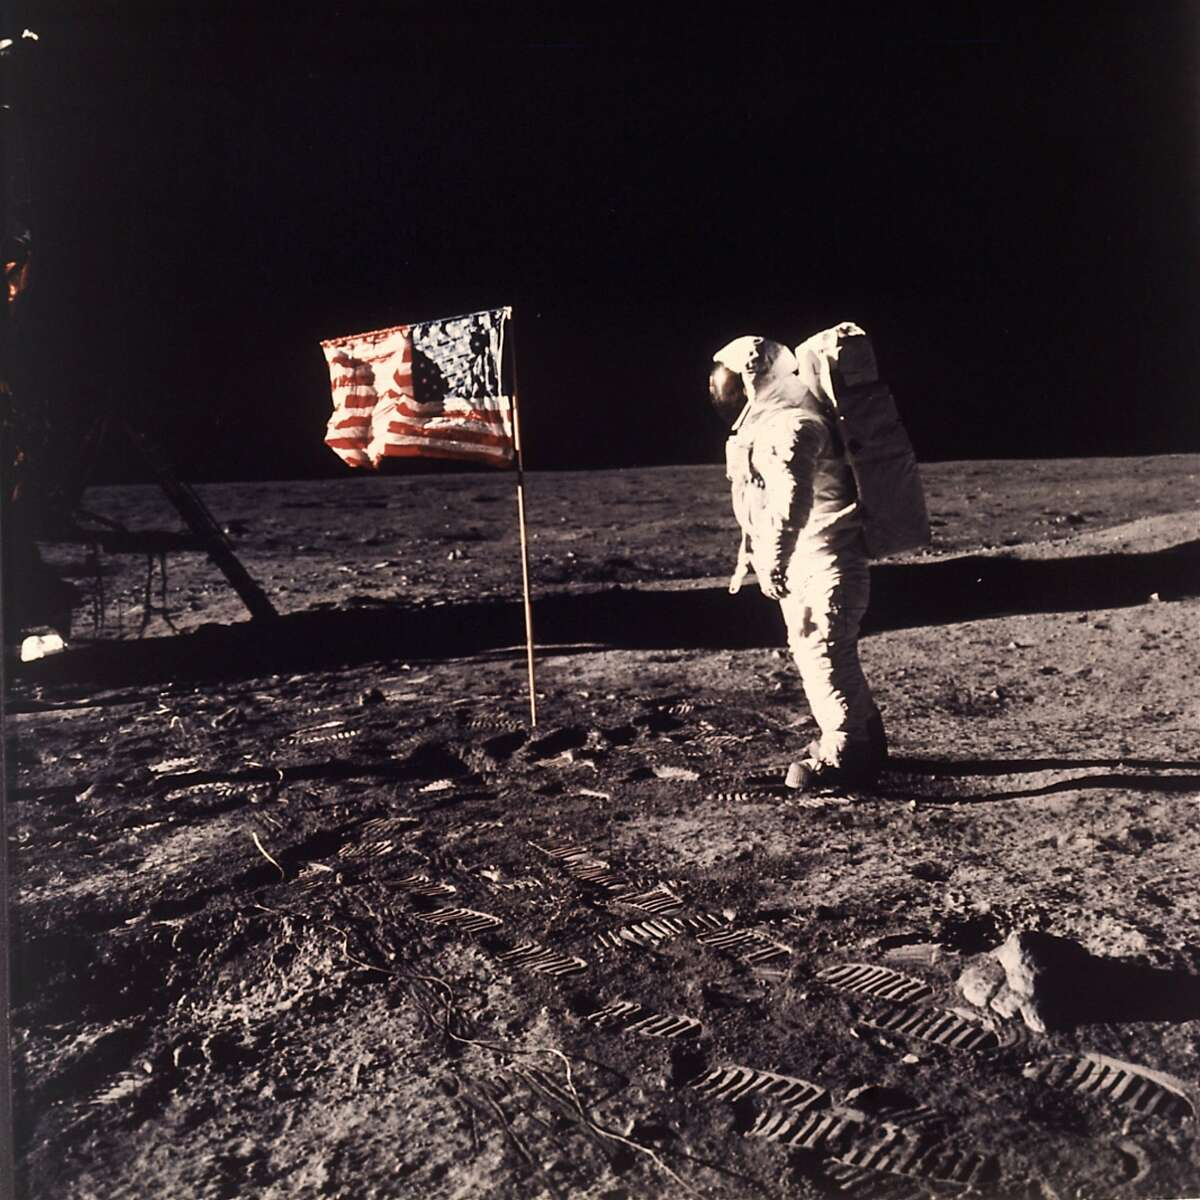 It seems a little otherworldly, but NASA astronauts tweeting candid lunar rover selfies from the moon might be a real thing, beginning late 2022. NASA announced that it has selected Nokia to build the first-ever 4G mobile network on Earth's natural satellite. Nokia was chosen as one of 14 partners to advance technologies for sustainable development on the moon, according to NASA officials. Featured image: In this July 20, 1969 file photo, Astronaut Edwin E.